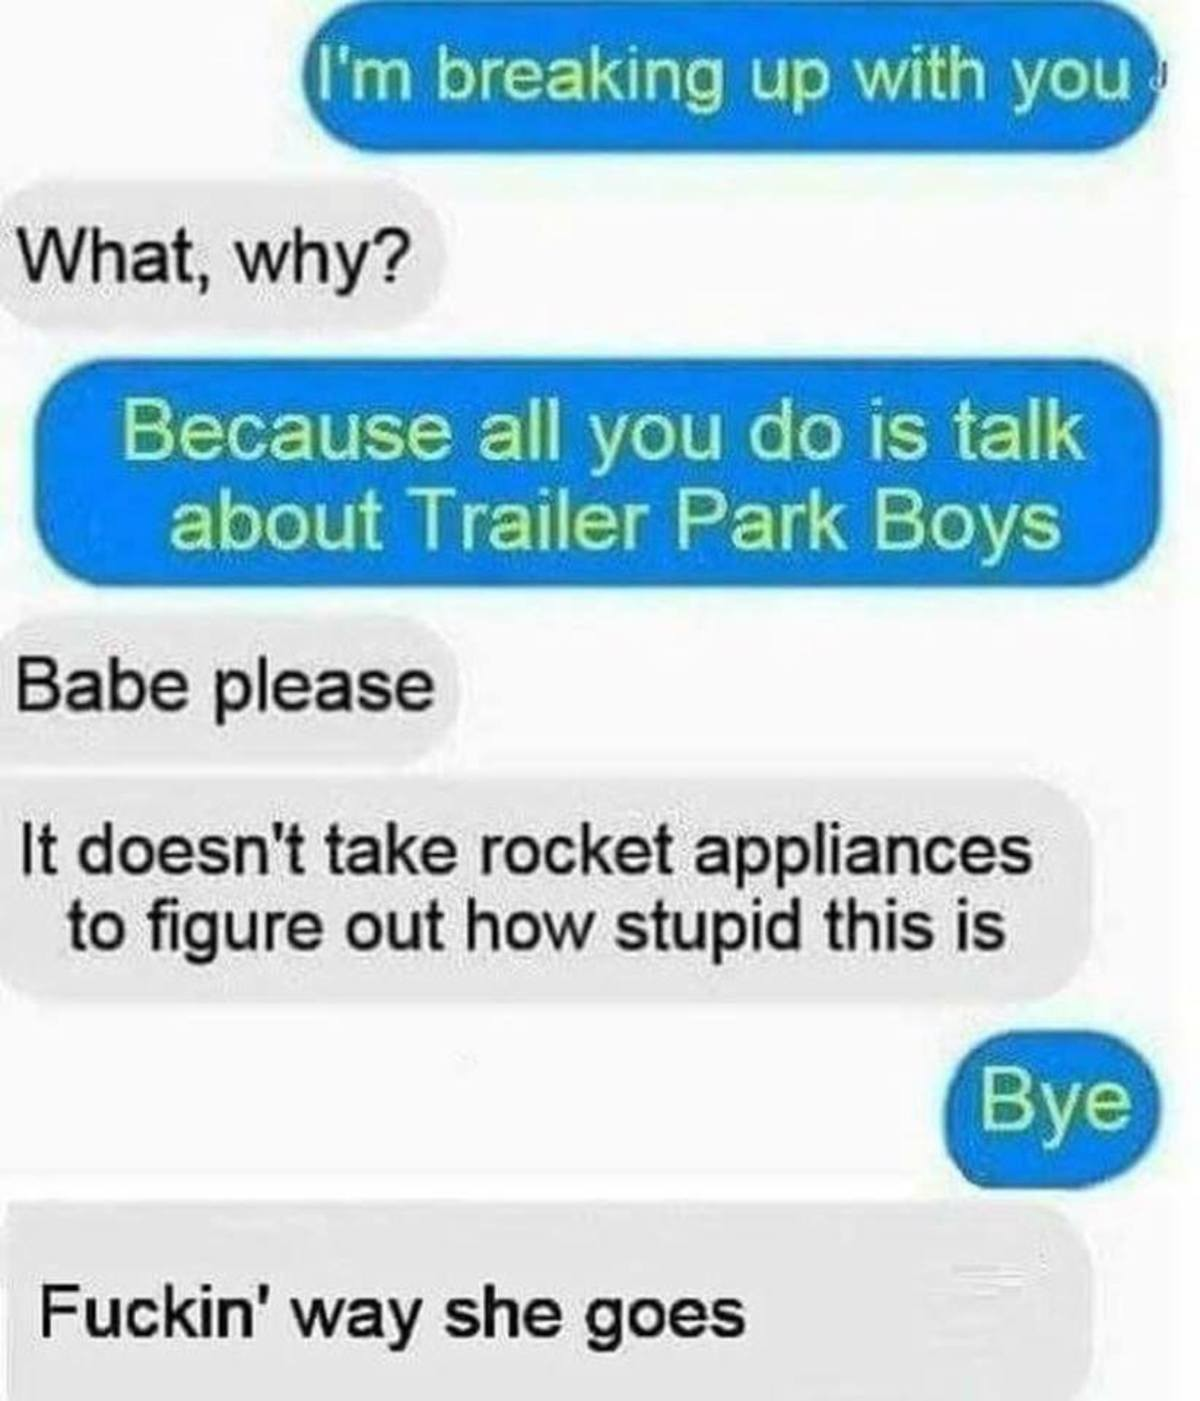 Babe please, just listen. . What, why? Babe please It doesn' t take rocket appliances to figure out how stupid this is Fuckin' way she goes. I love Trailer Park Boys.